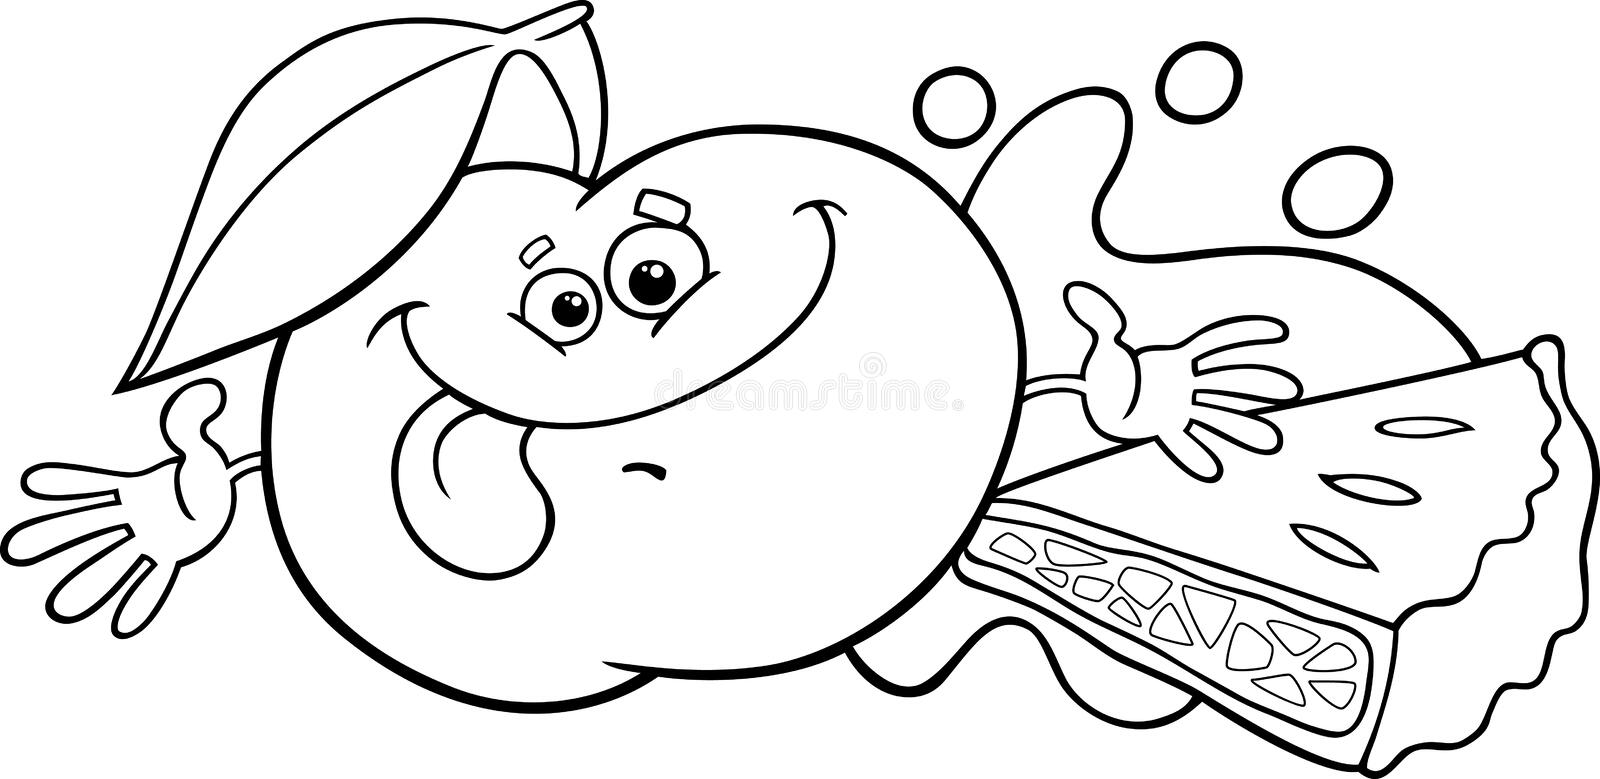 Apple And Pie Cartoon Coloring Page Stock Vector